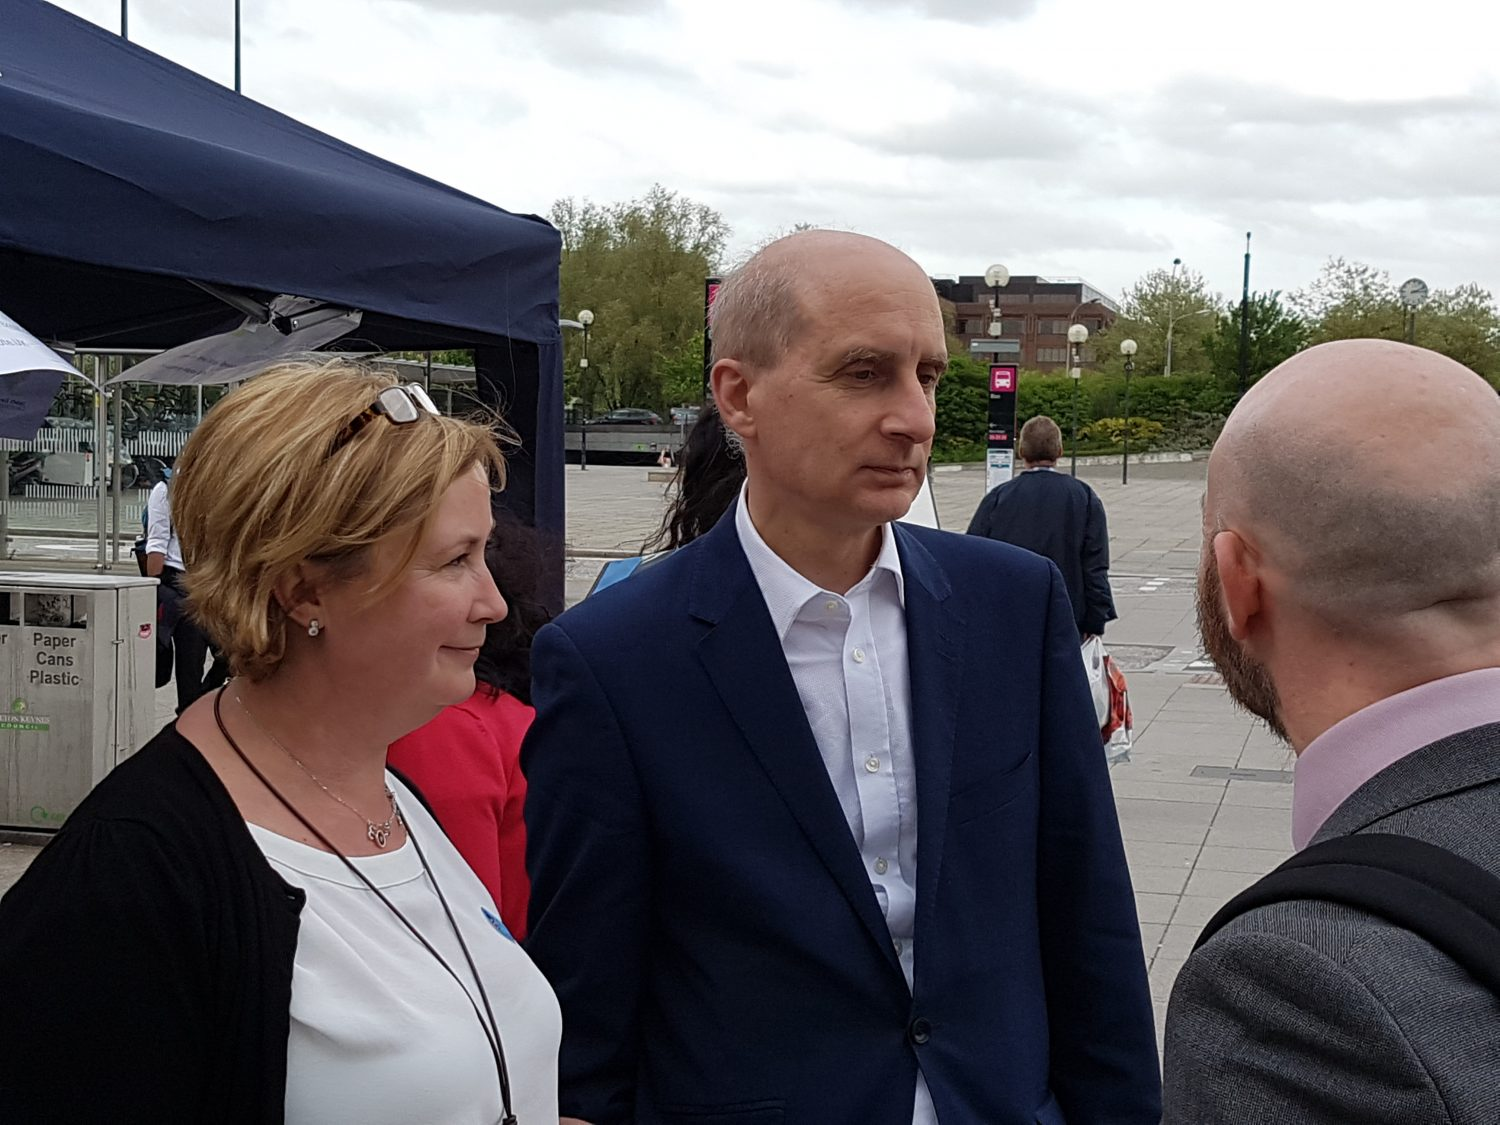 Juliet Smith and Lord Adonis at European Movement street event Milton Keynes